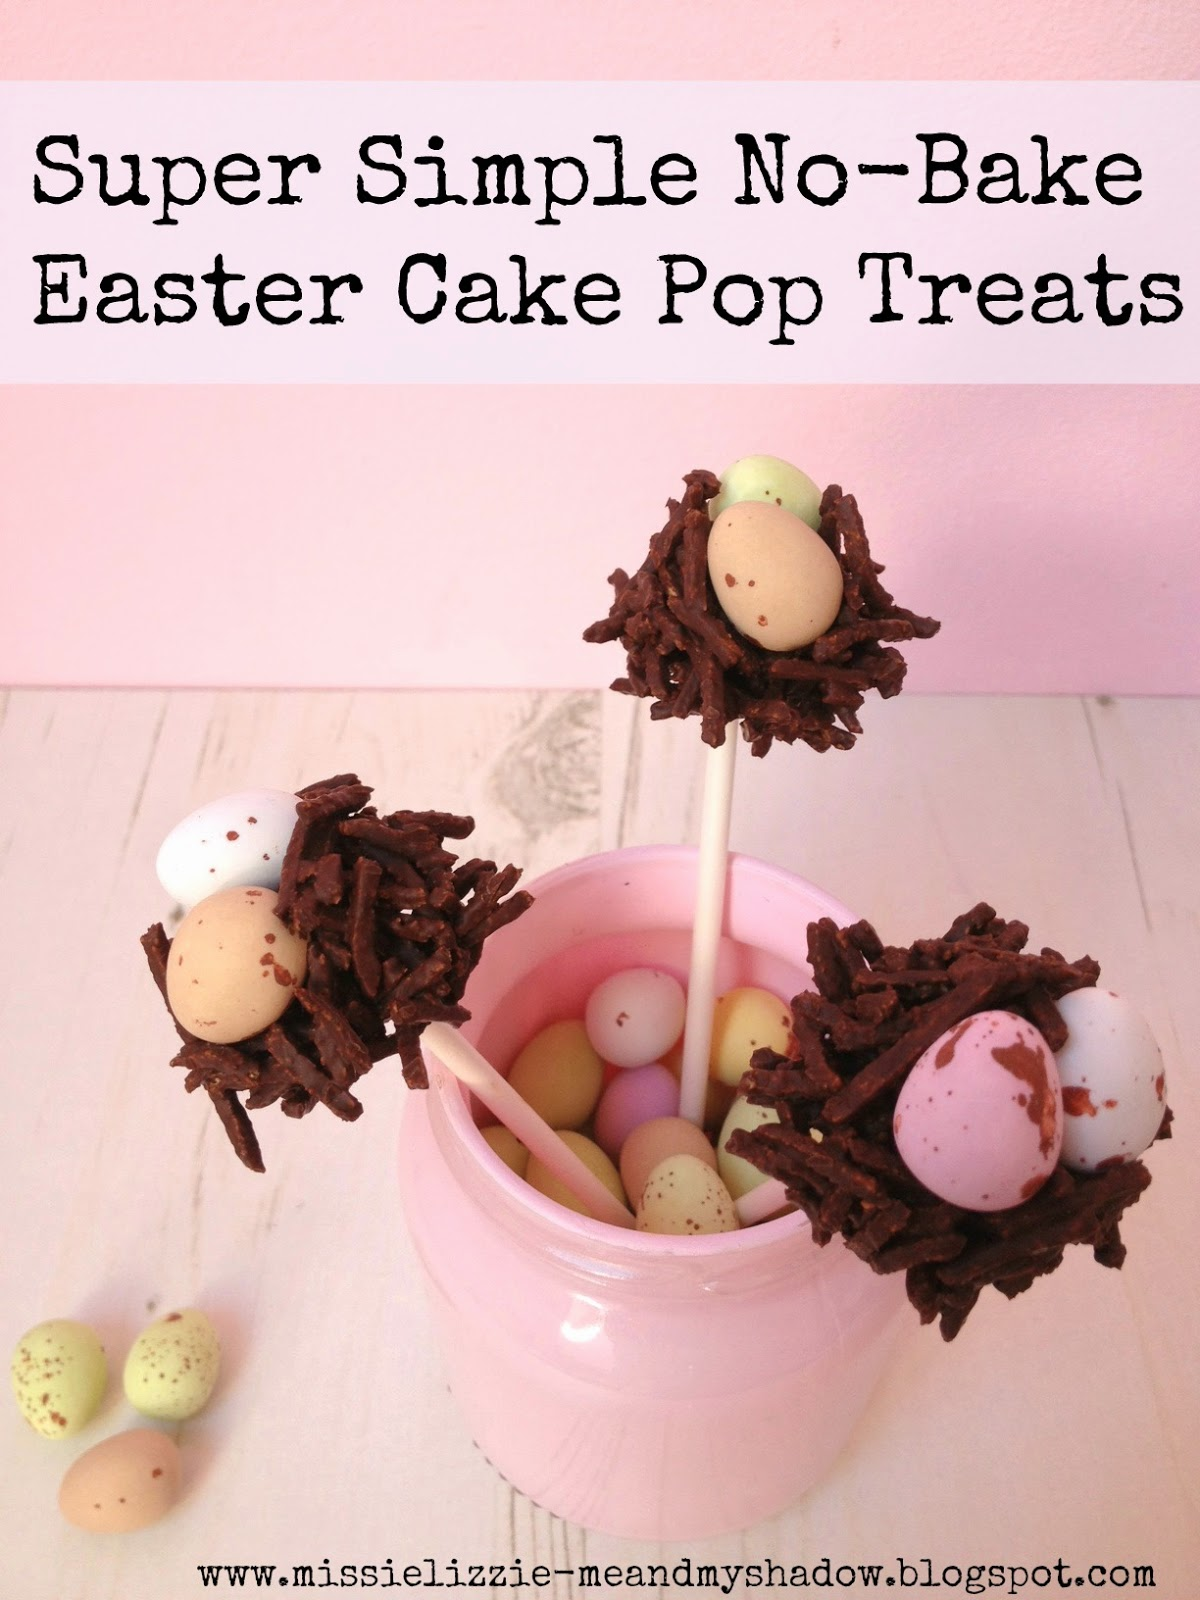 How to make simple Easter chocolate krispie nest egg cake pops